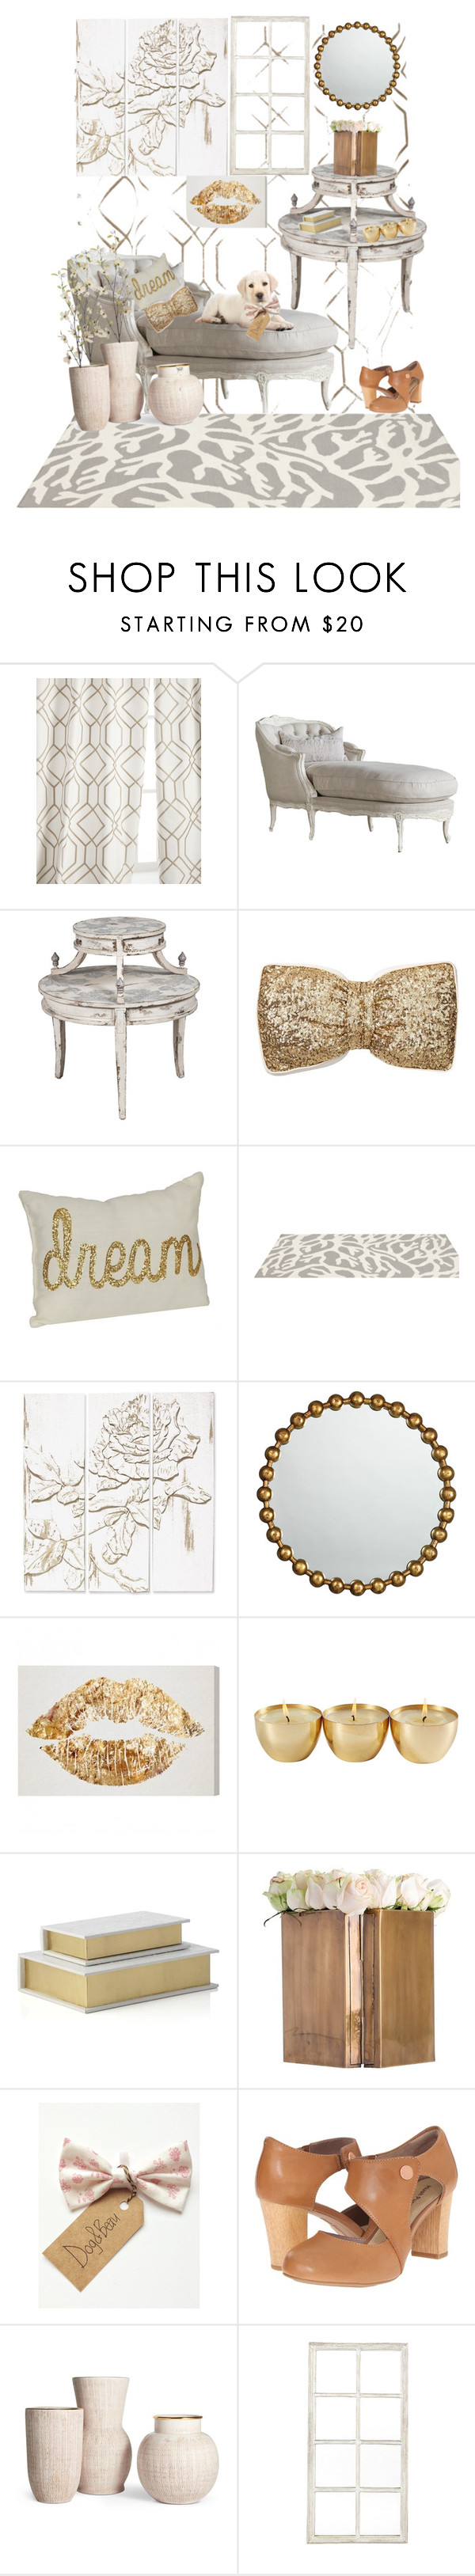 """""""Dreaming"""" by sherrysrosecottage-1 ❤ liked on Polyvore featuring interior, interiors, interior design, home, home decor, interior decorating, Softline Home Fashions, PBteen, Somerset Bay and Palecek"""